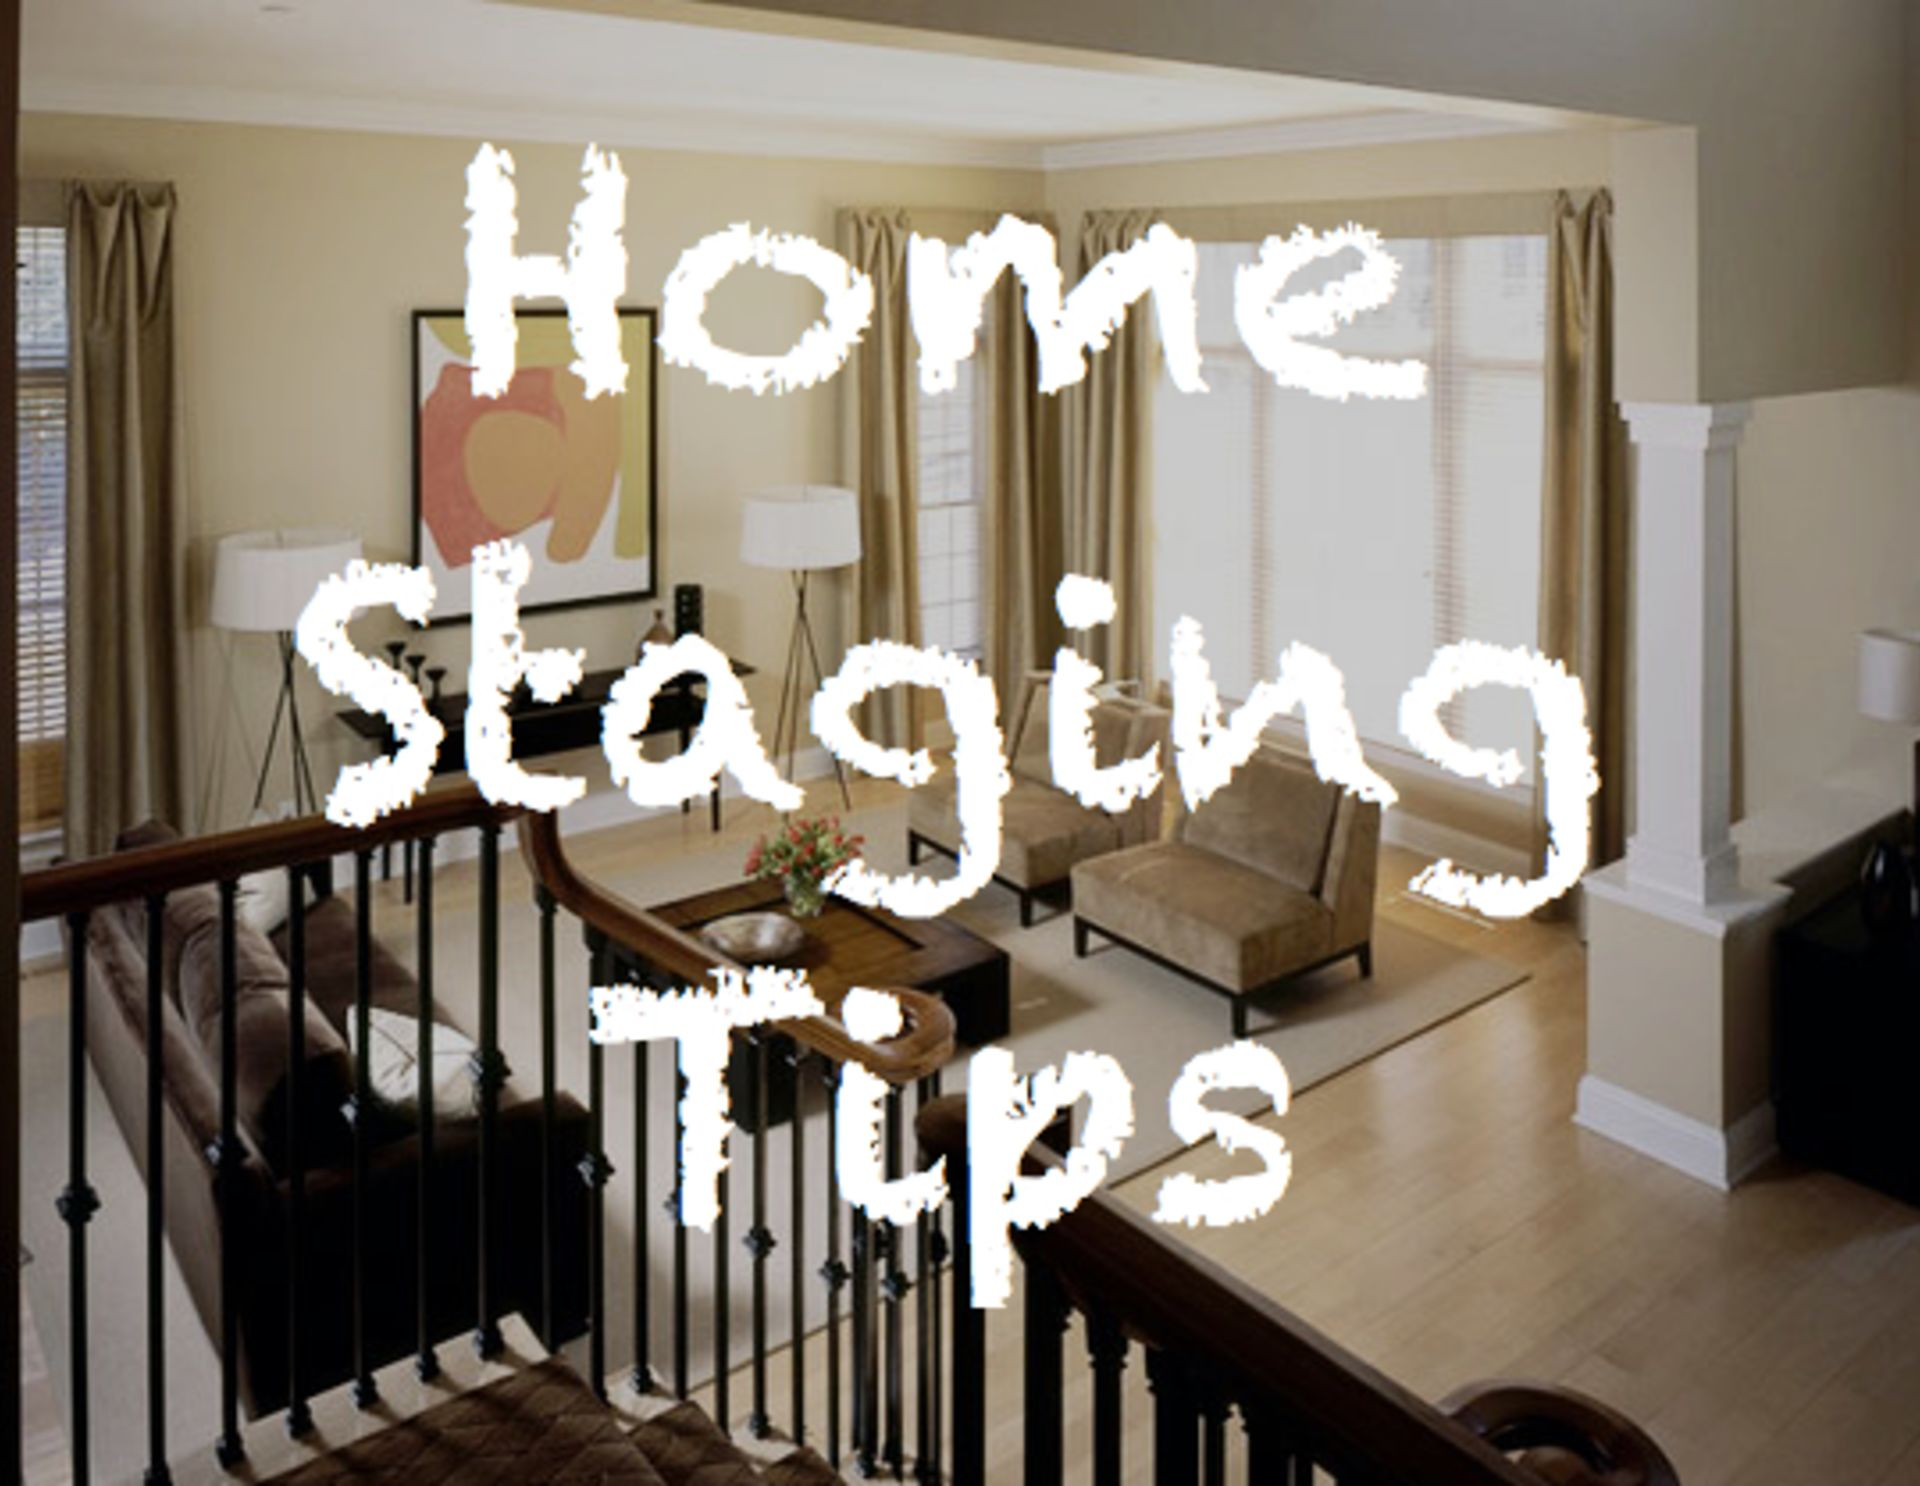 Dallas Homeowners, Virtual Home Staging is a 3rd Alternative